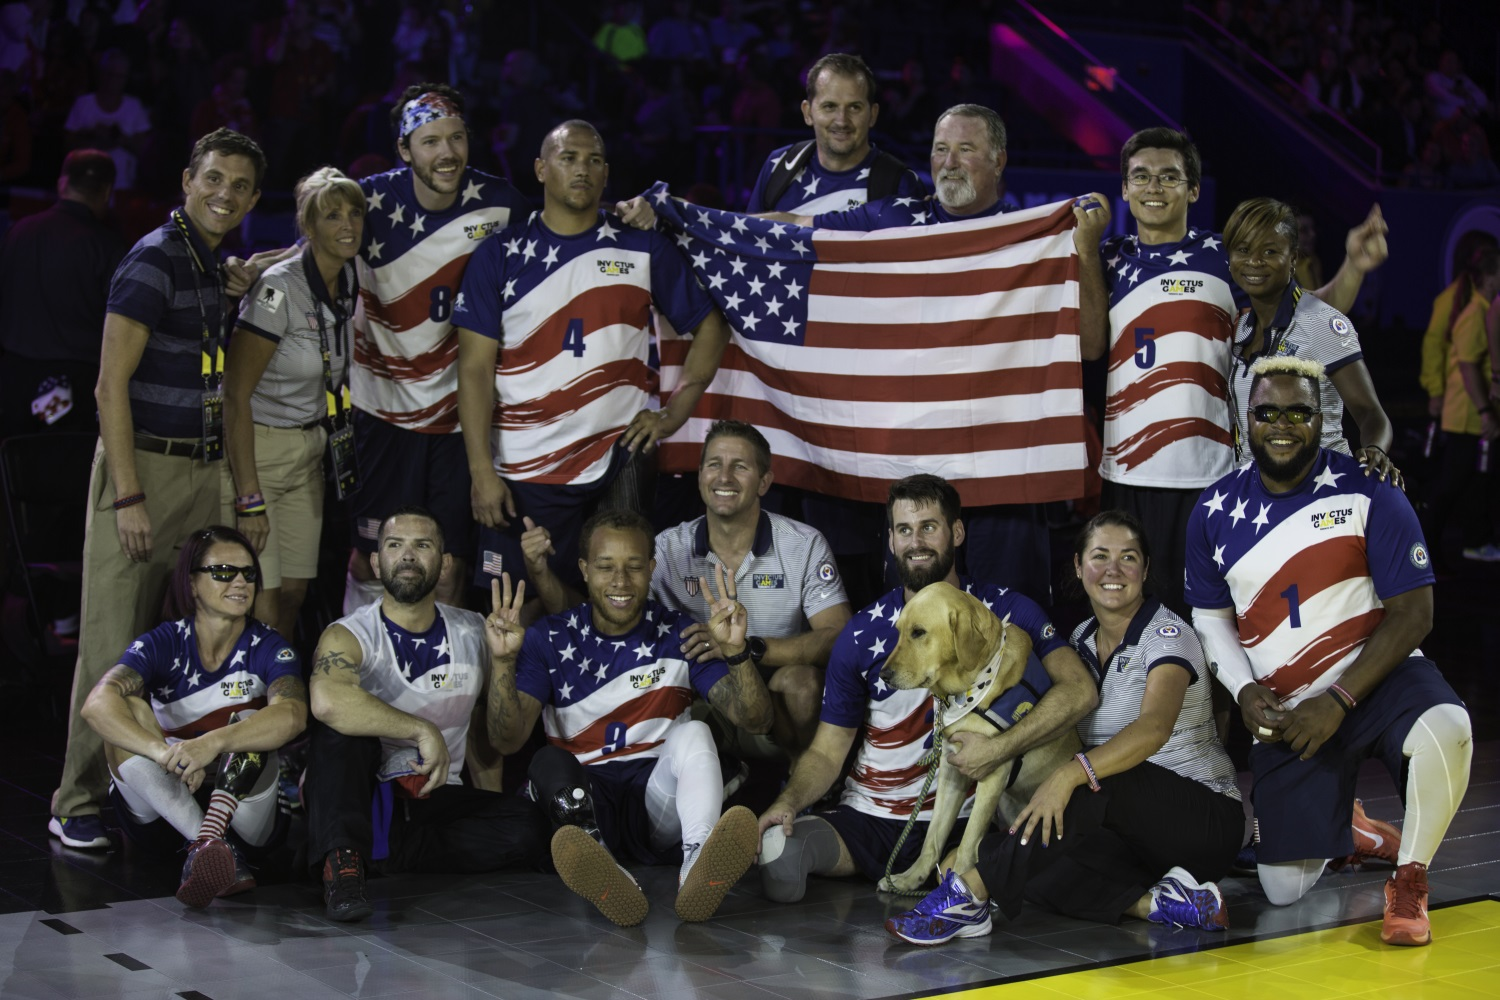 Team U.S. places bronze for the sitting volleyball event during the Invictus Games, at Ryerson's Mattamy Athletic Centre in Toronto, Canada, on Sept. 27, 2017. (Pfc. Seara Marcsis/Army)